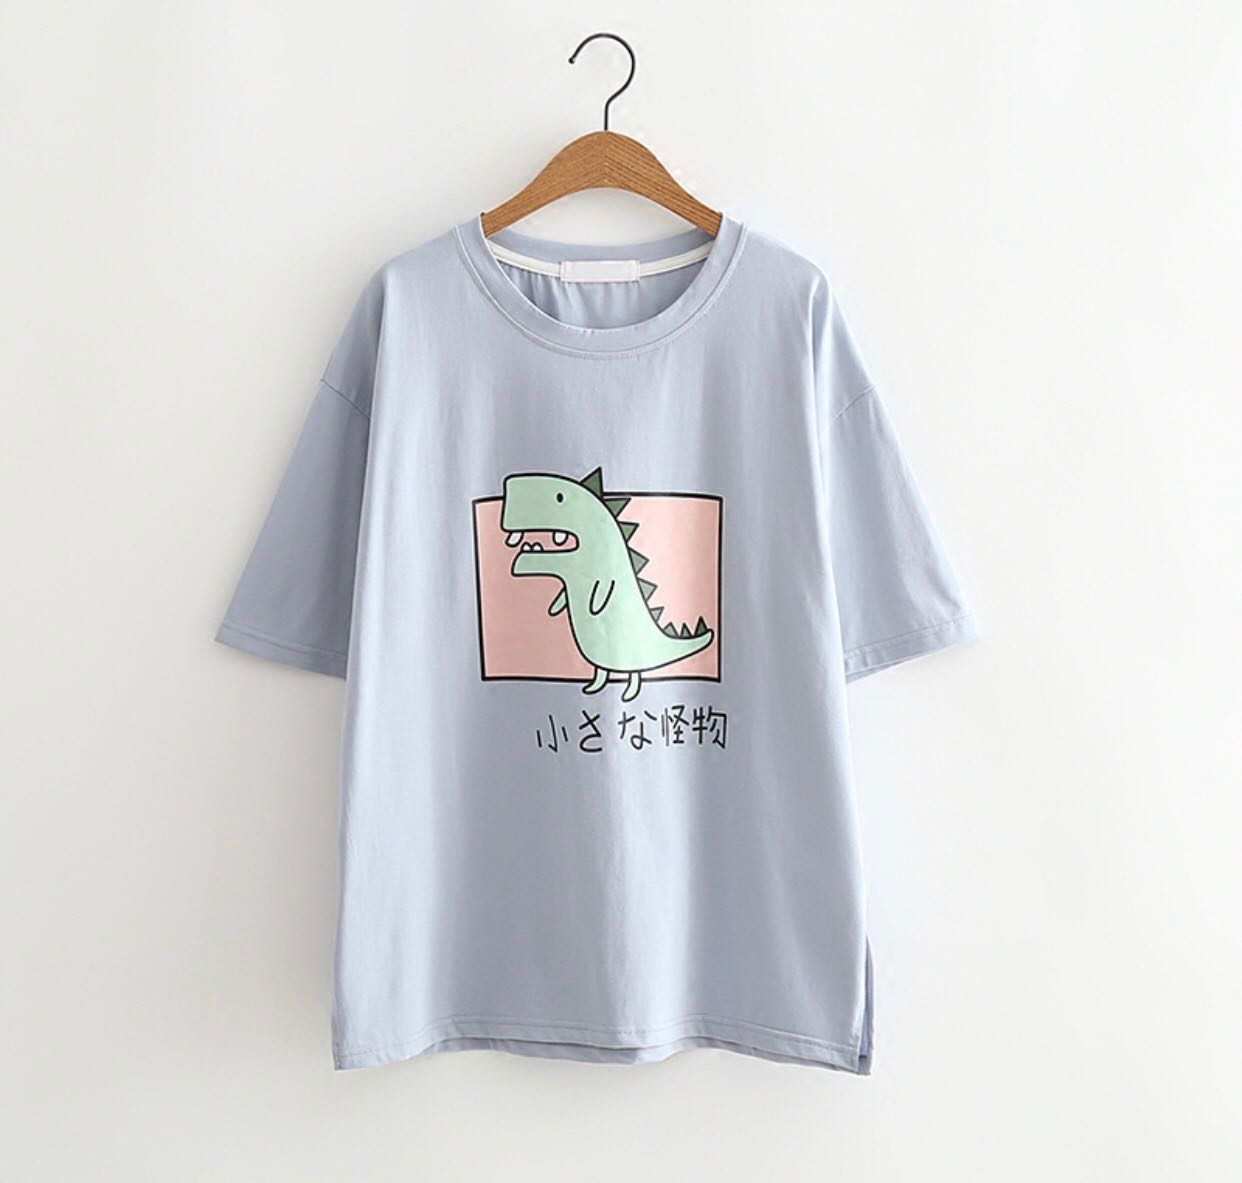 aa32ccb6 ulzzang cute dinosaur graphic tee, Women's Fashion, Clothes, Tops on ...